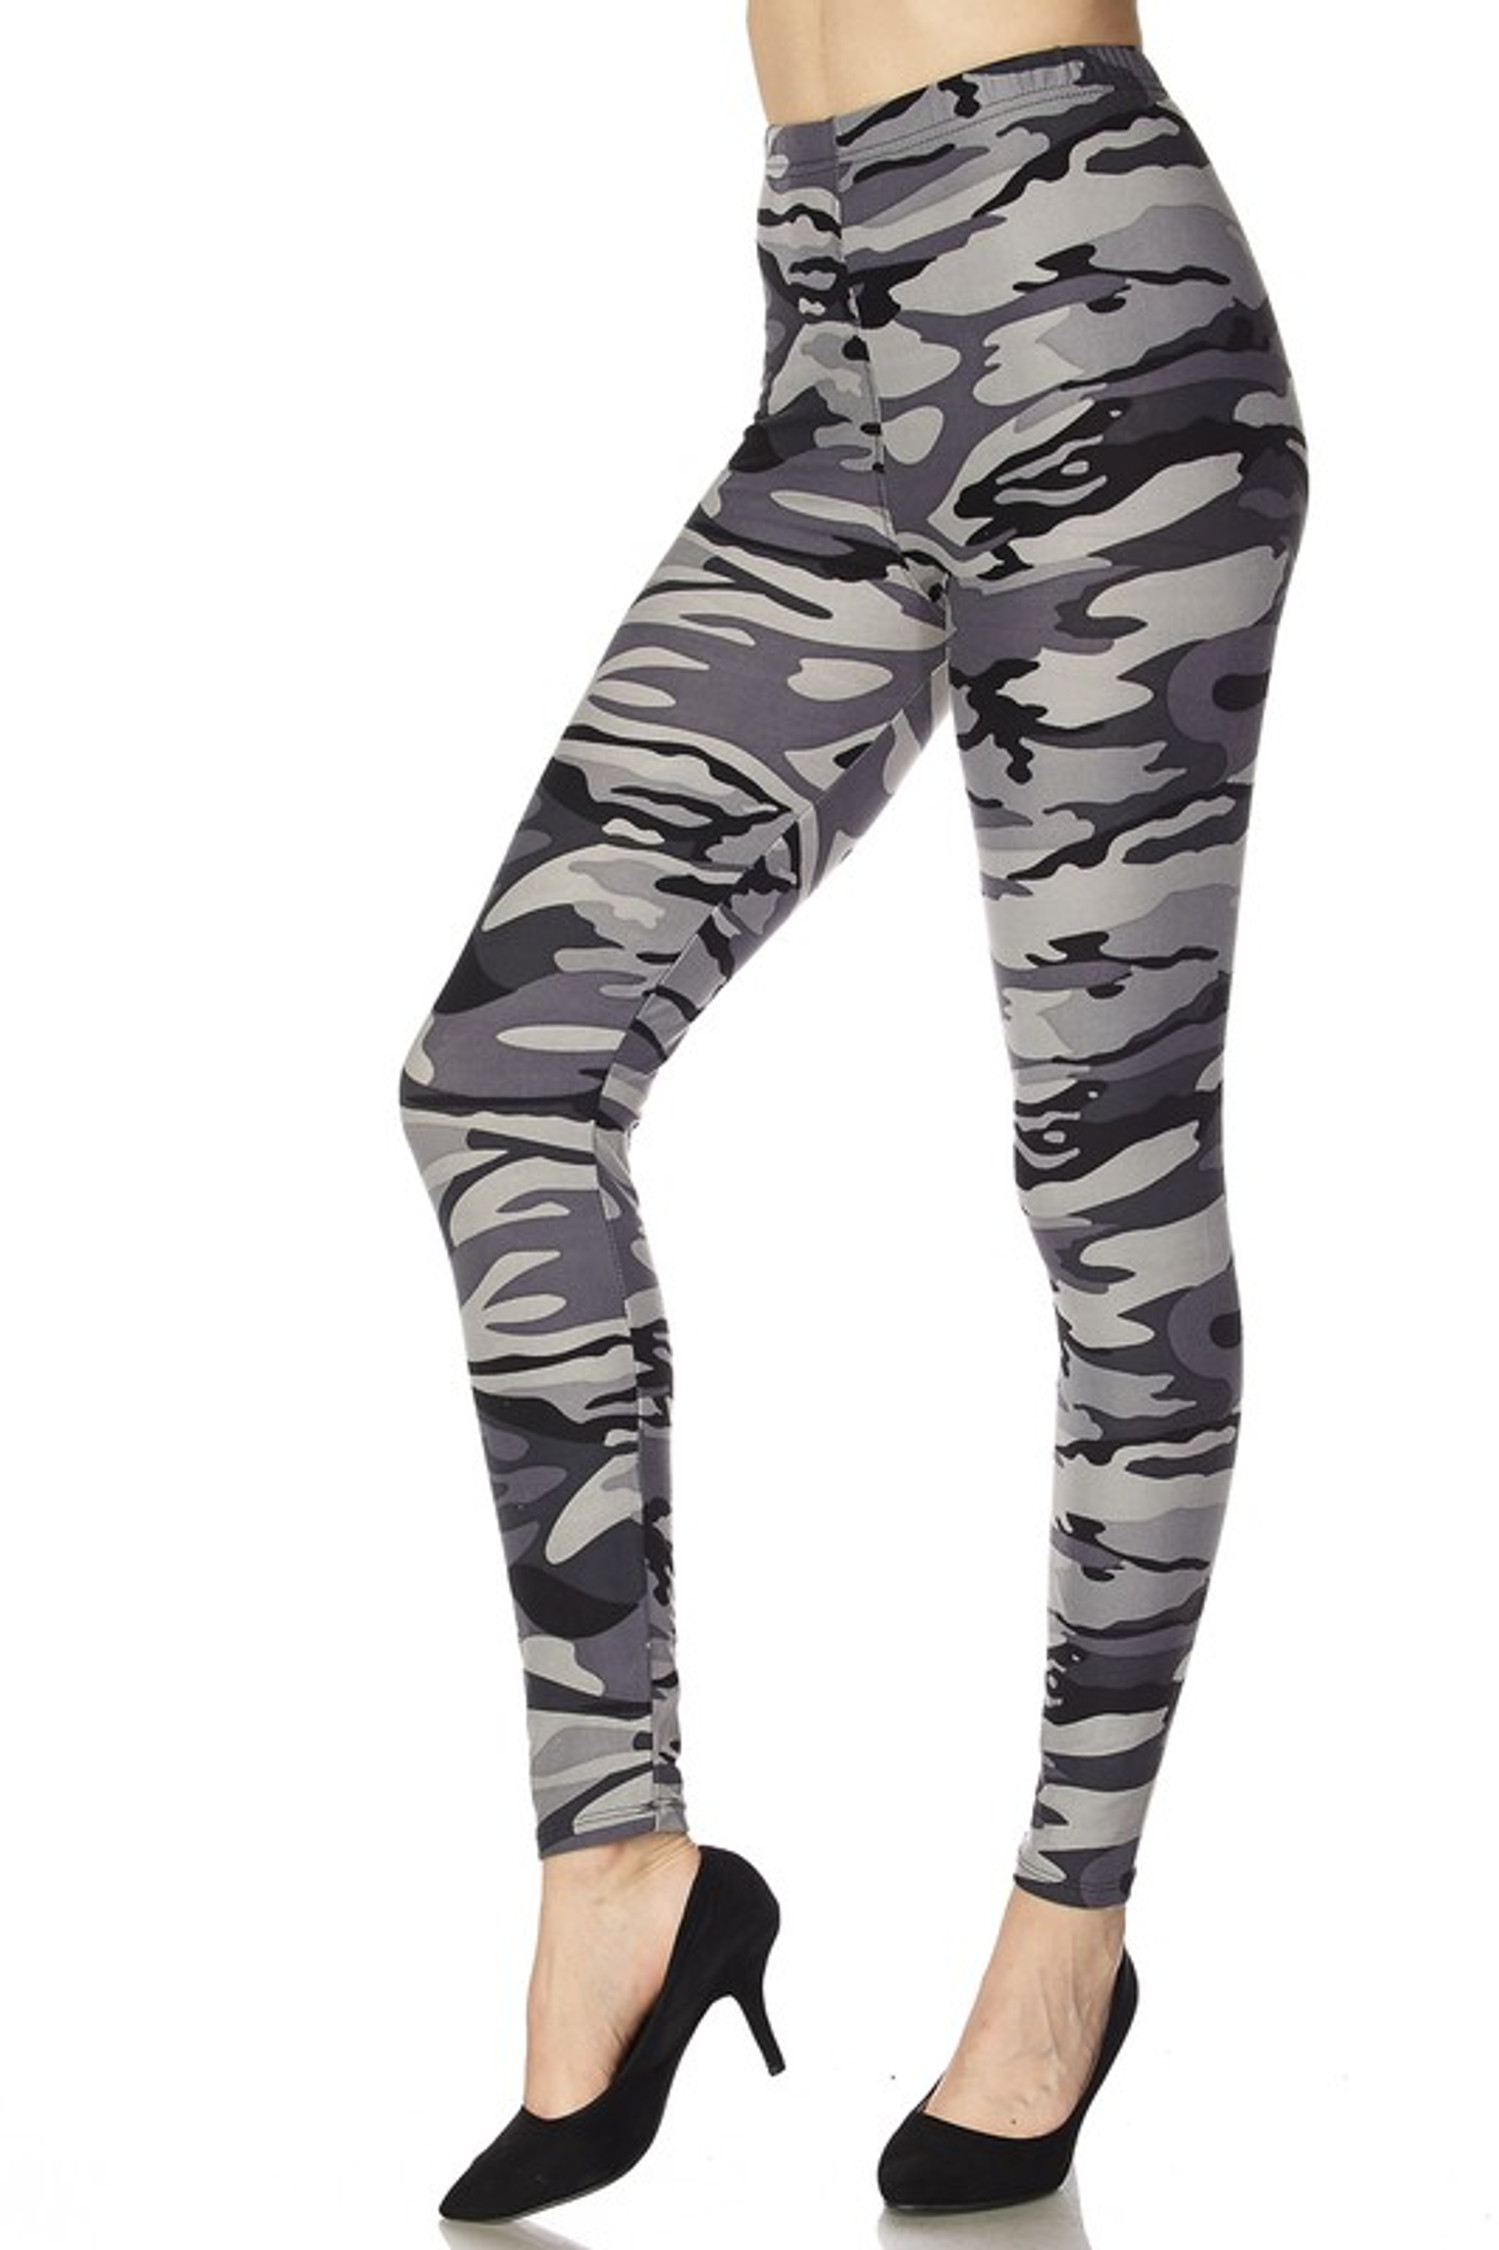 Shades of Gray Camouflage Leggings